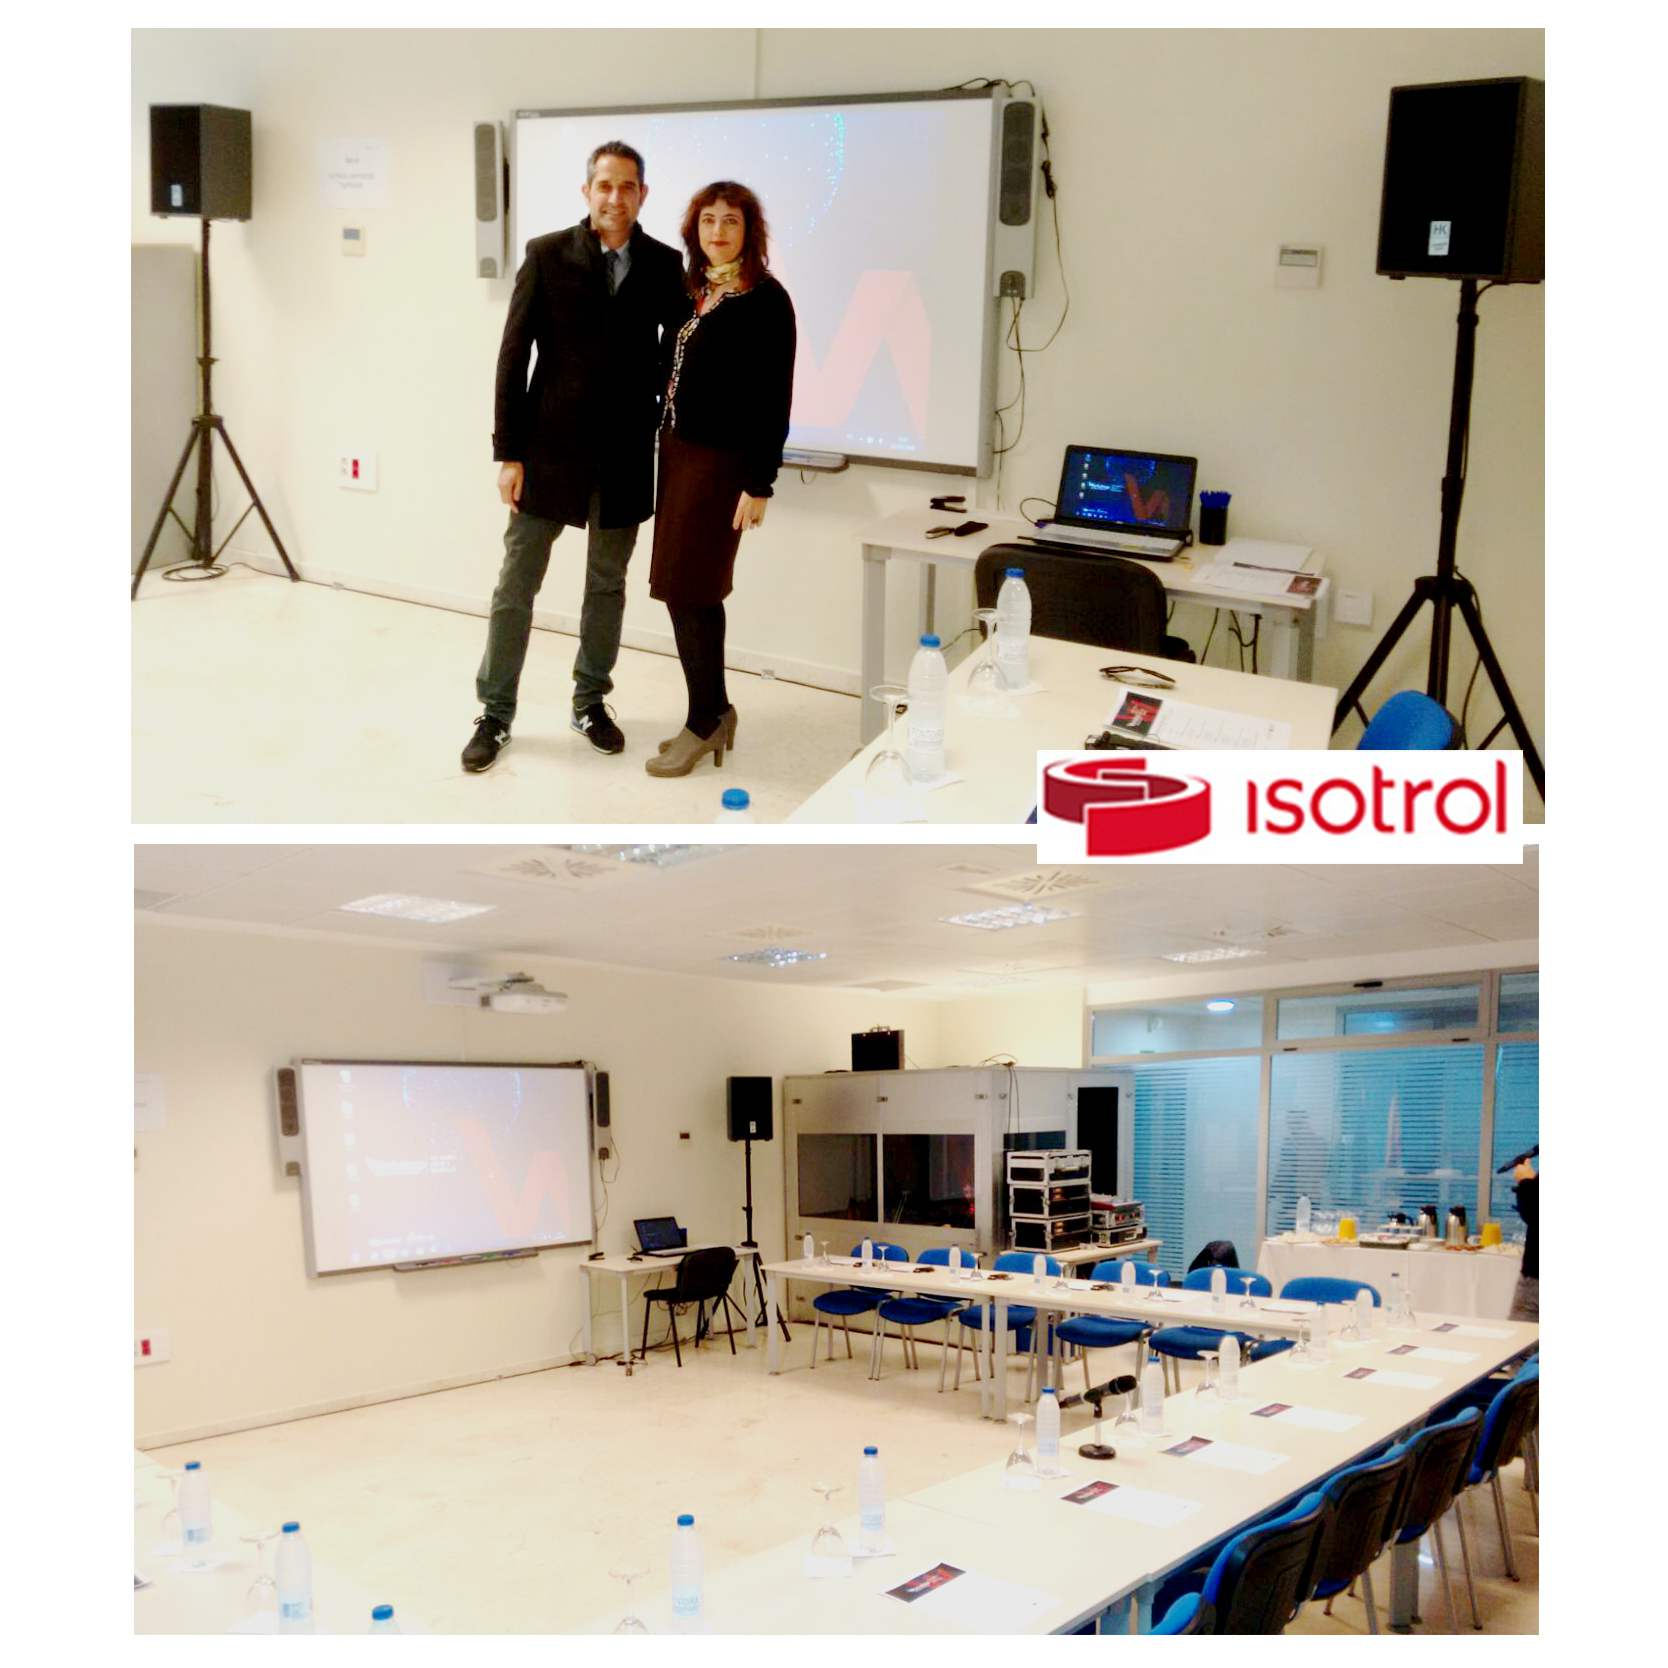 Novalo team at Isotrol in Seville.